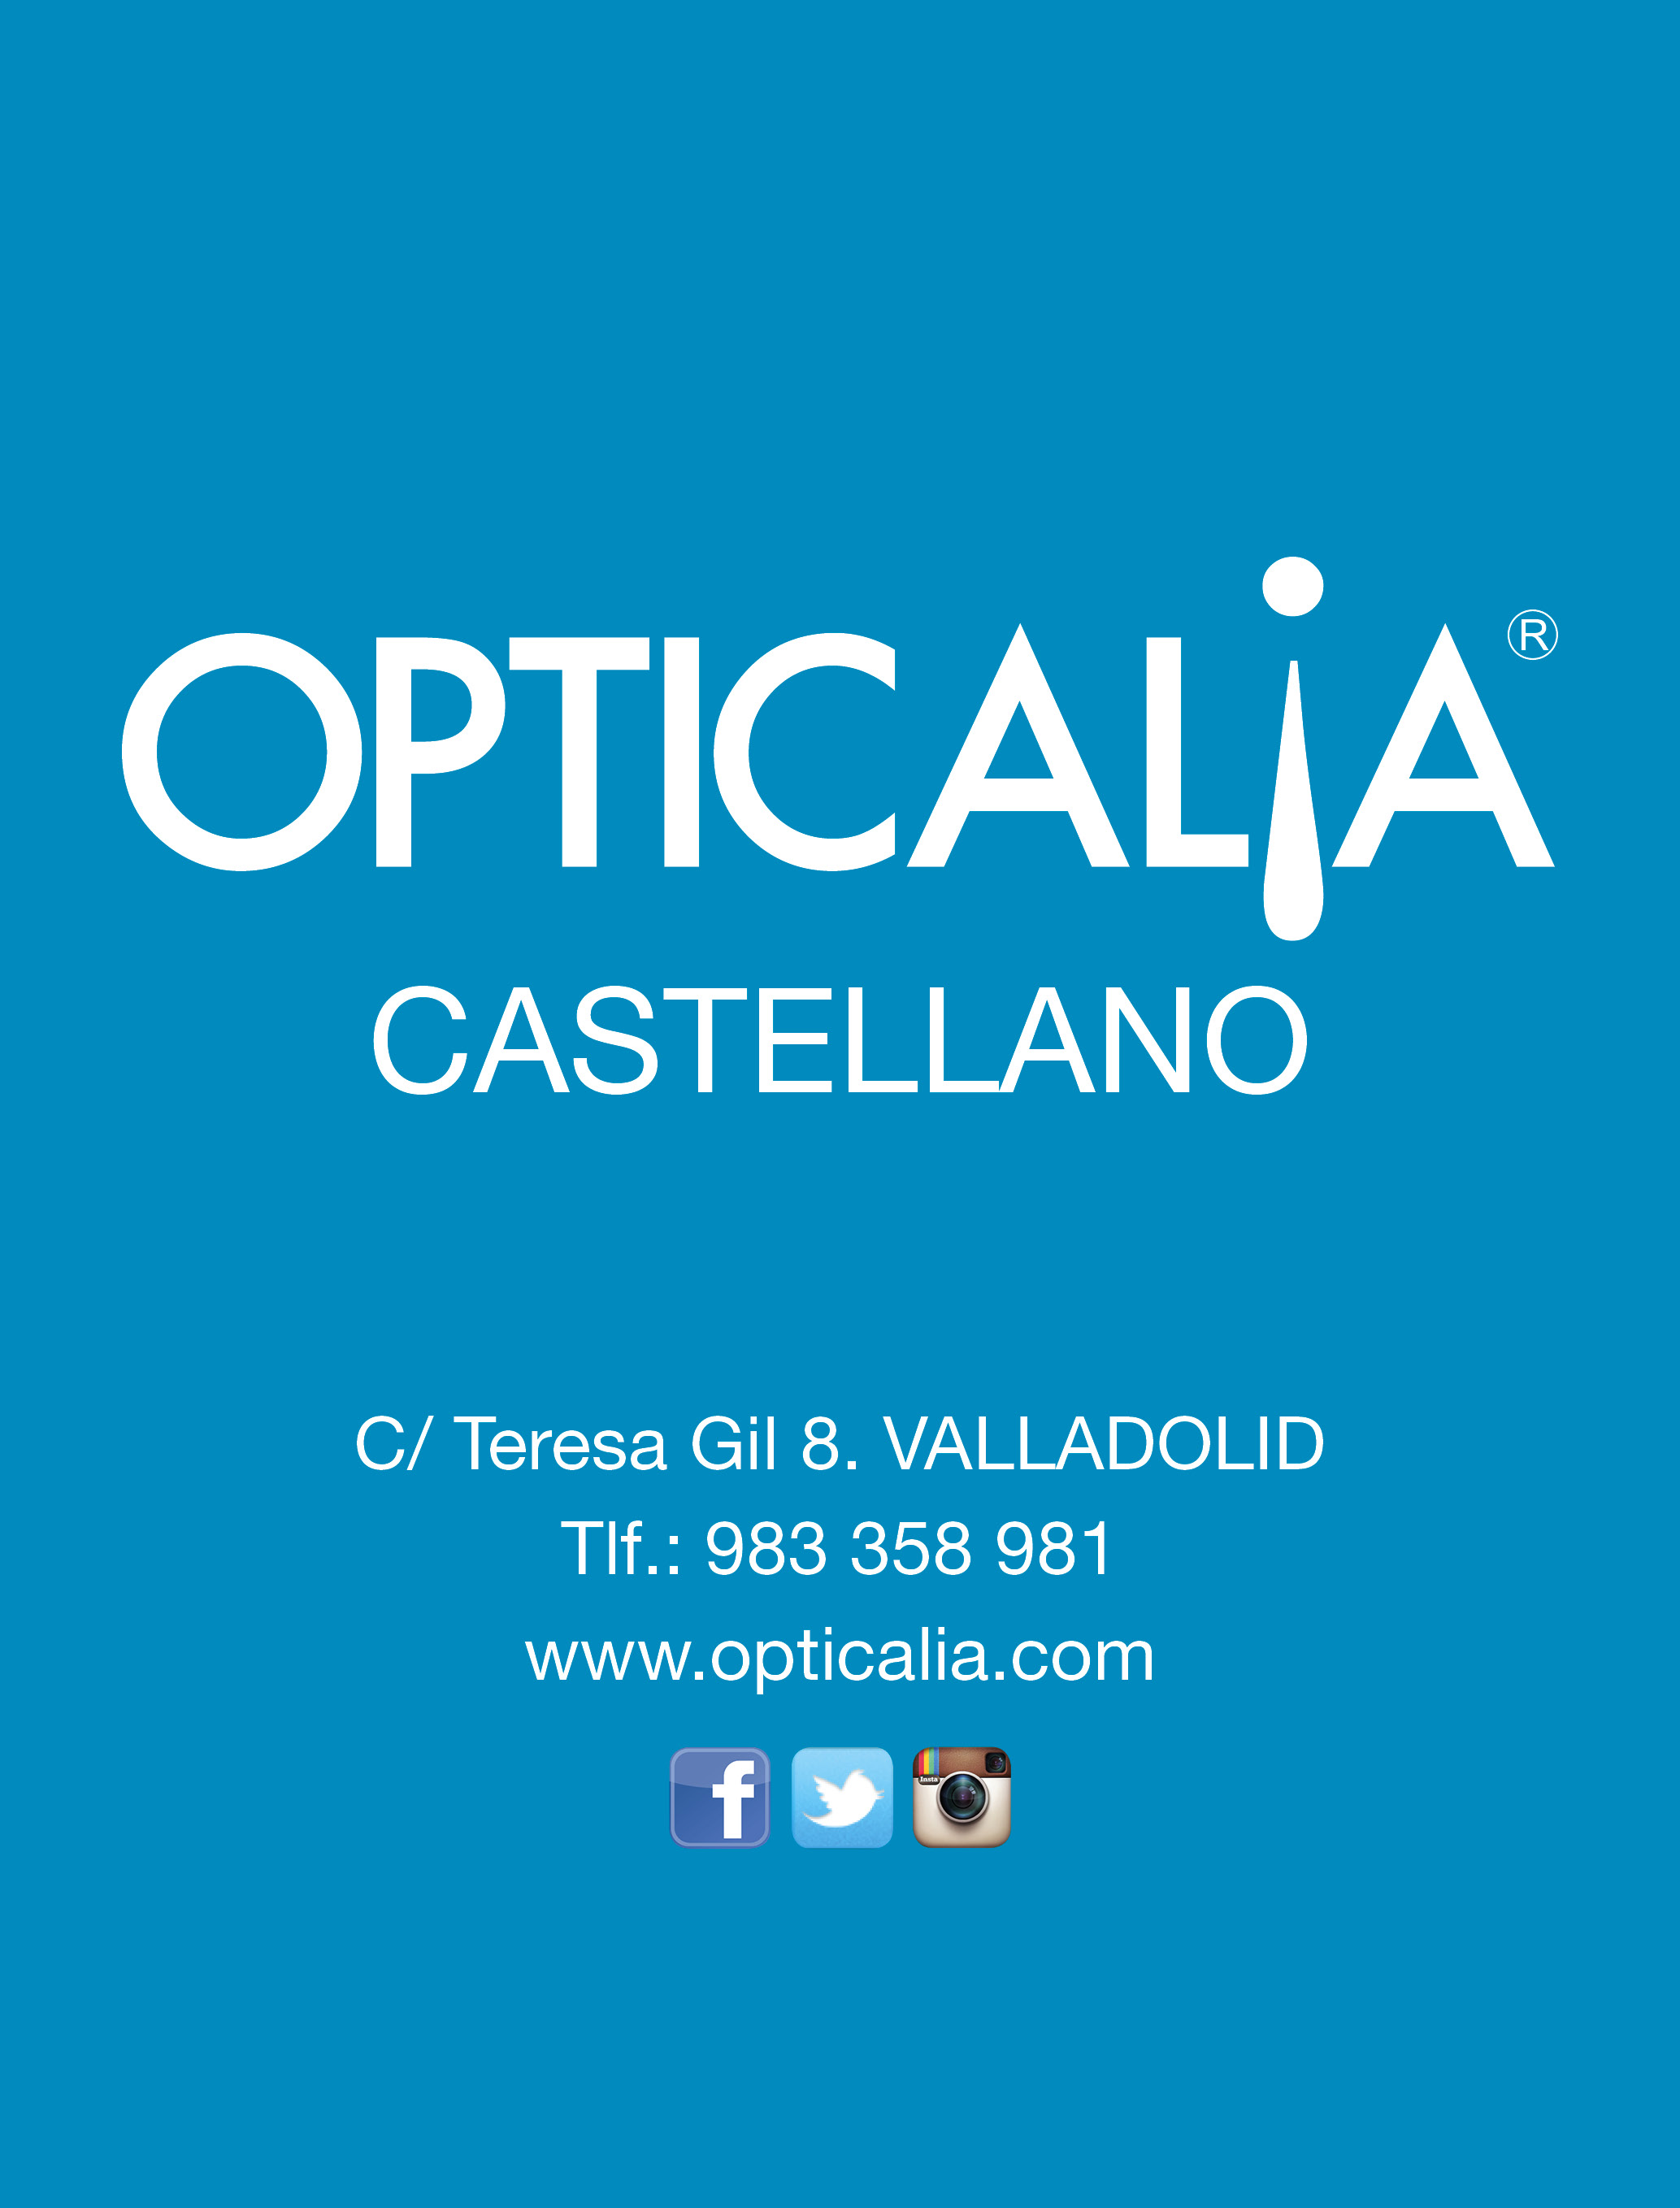 Opticalia Castellano